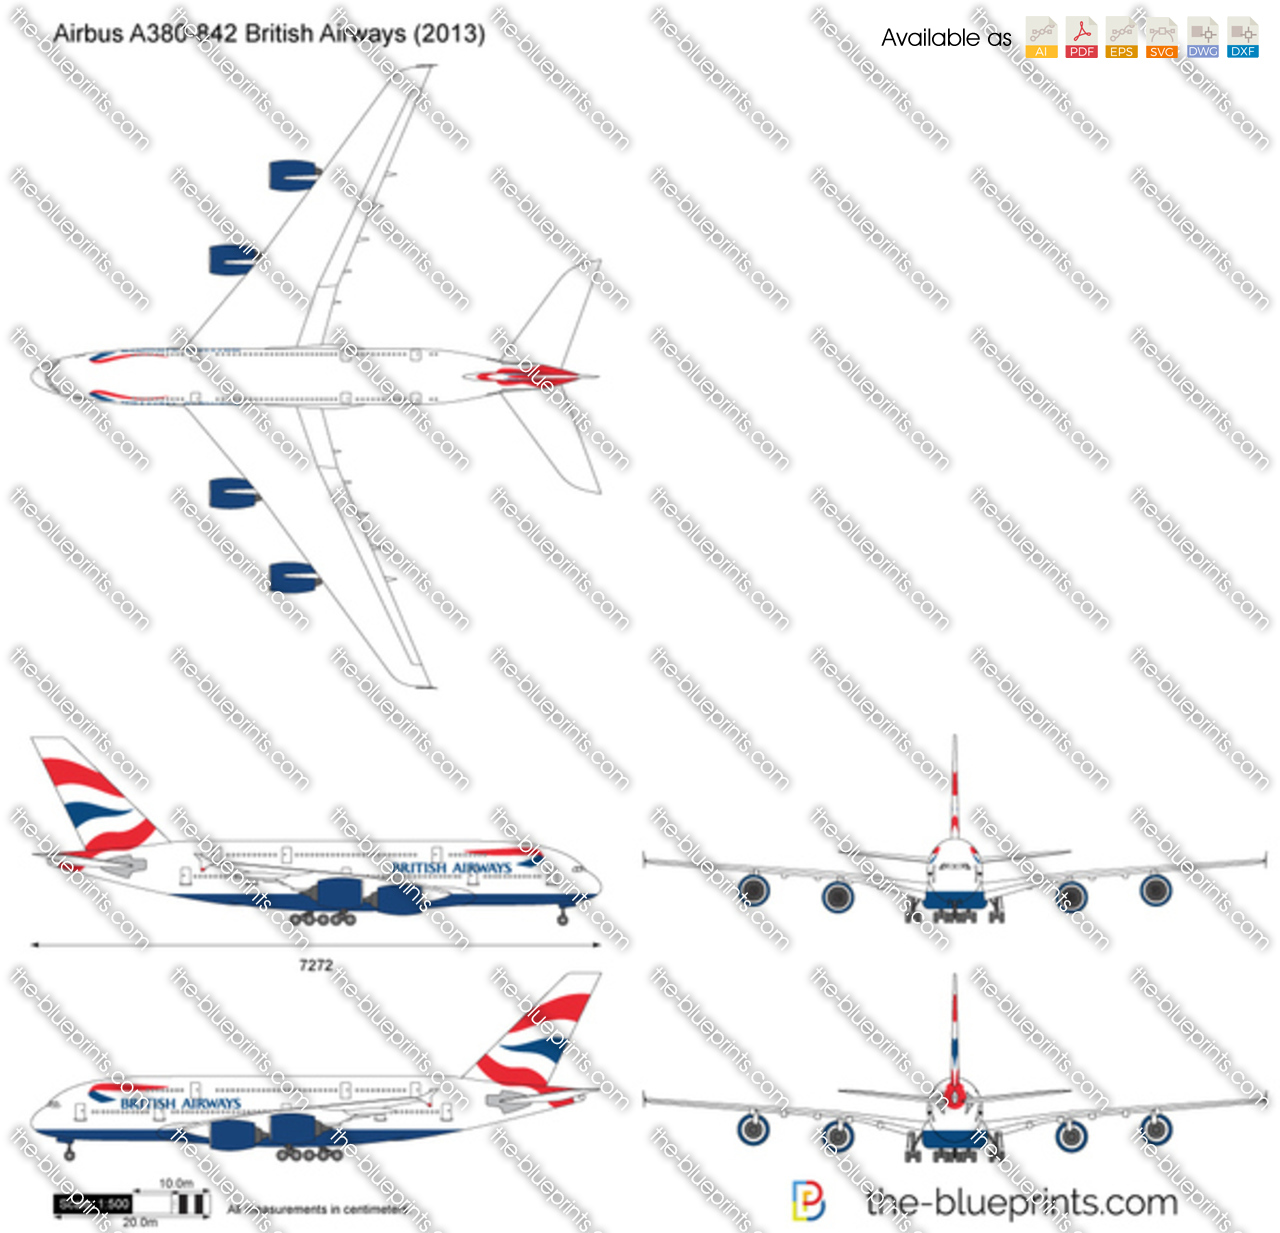 2015 Airbus A380-842 British Airways